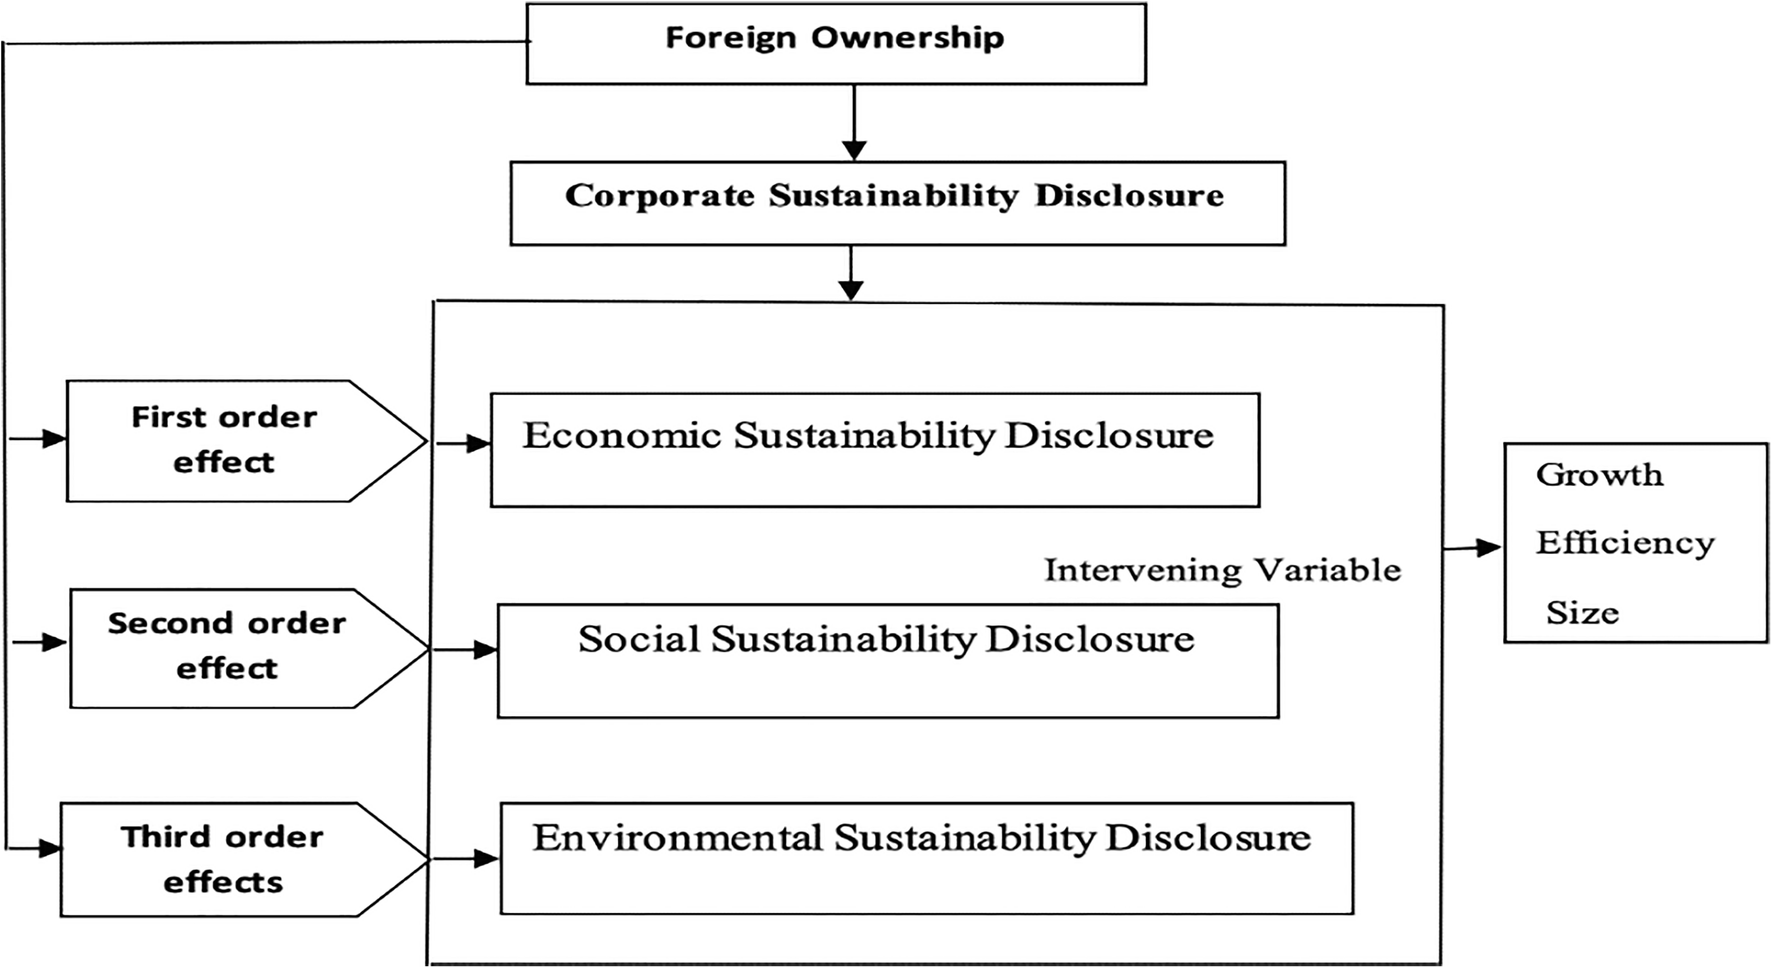 Does foreign ownership affect corporate sustainability